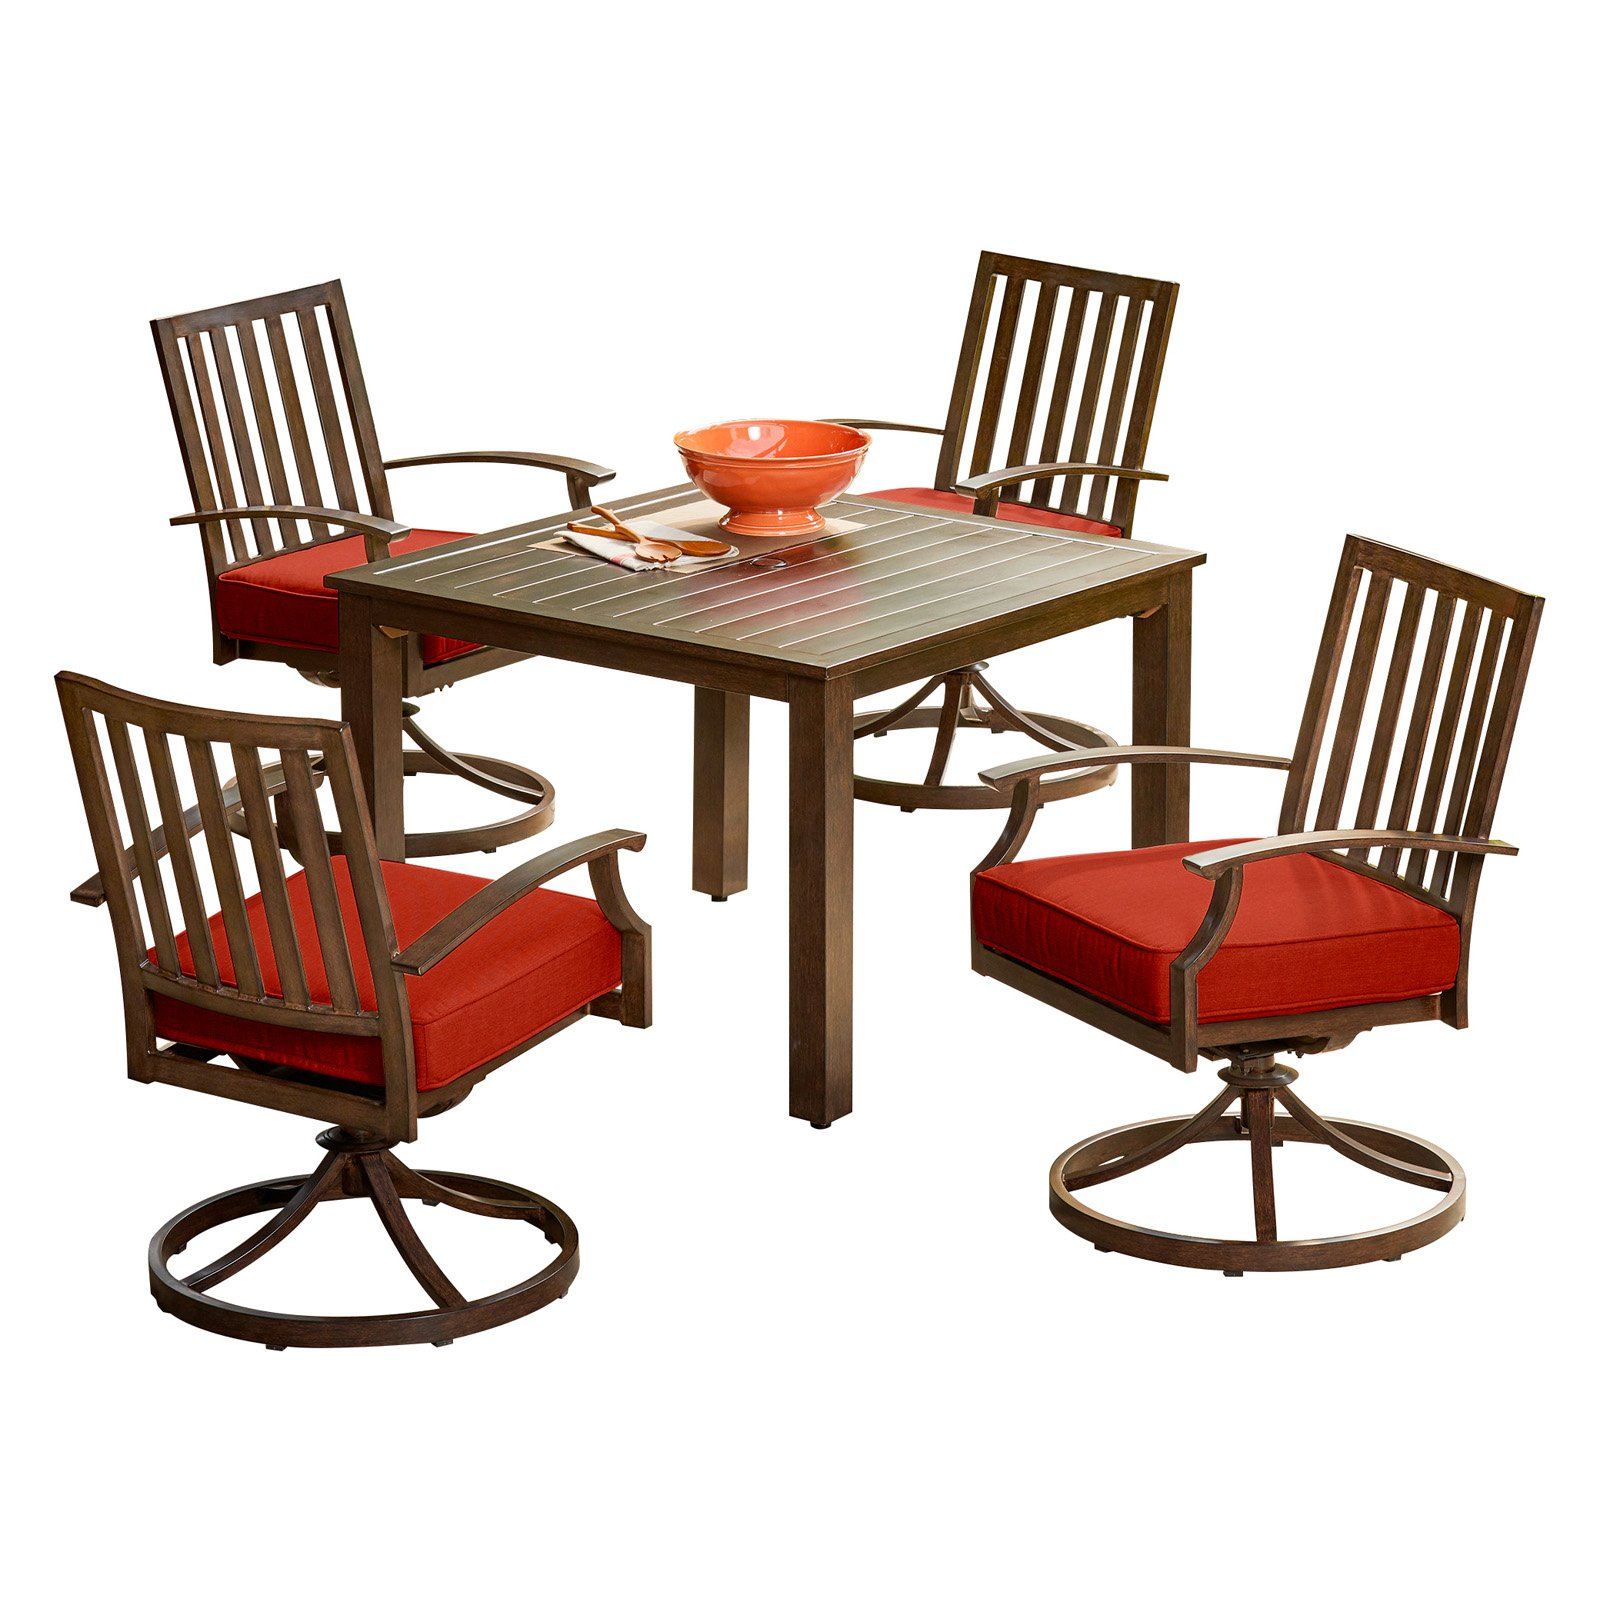 Fashionable Outdoor Royal Garden Bridgeport Aluminum 5 Piece Motion Patio Dining With Regard To Saintcroix 3 Piece Dining Sets (View 21 of 25)